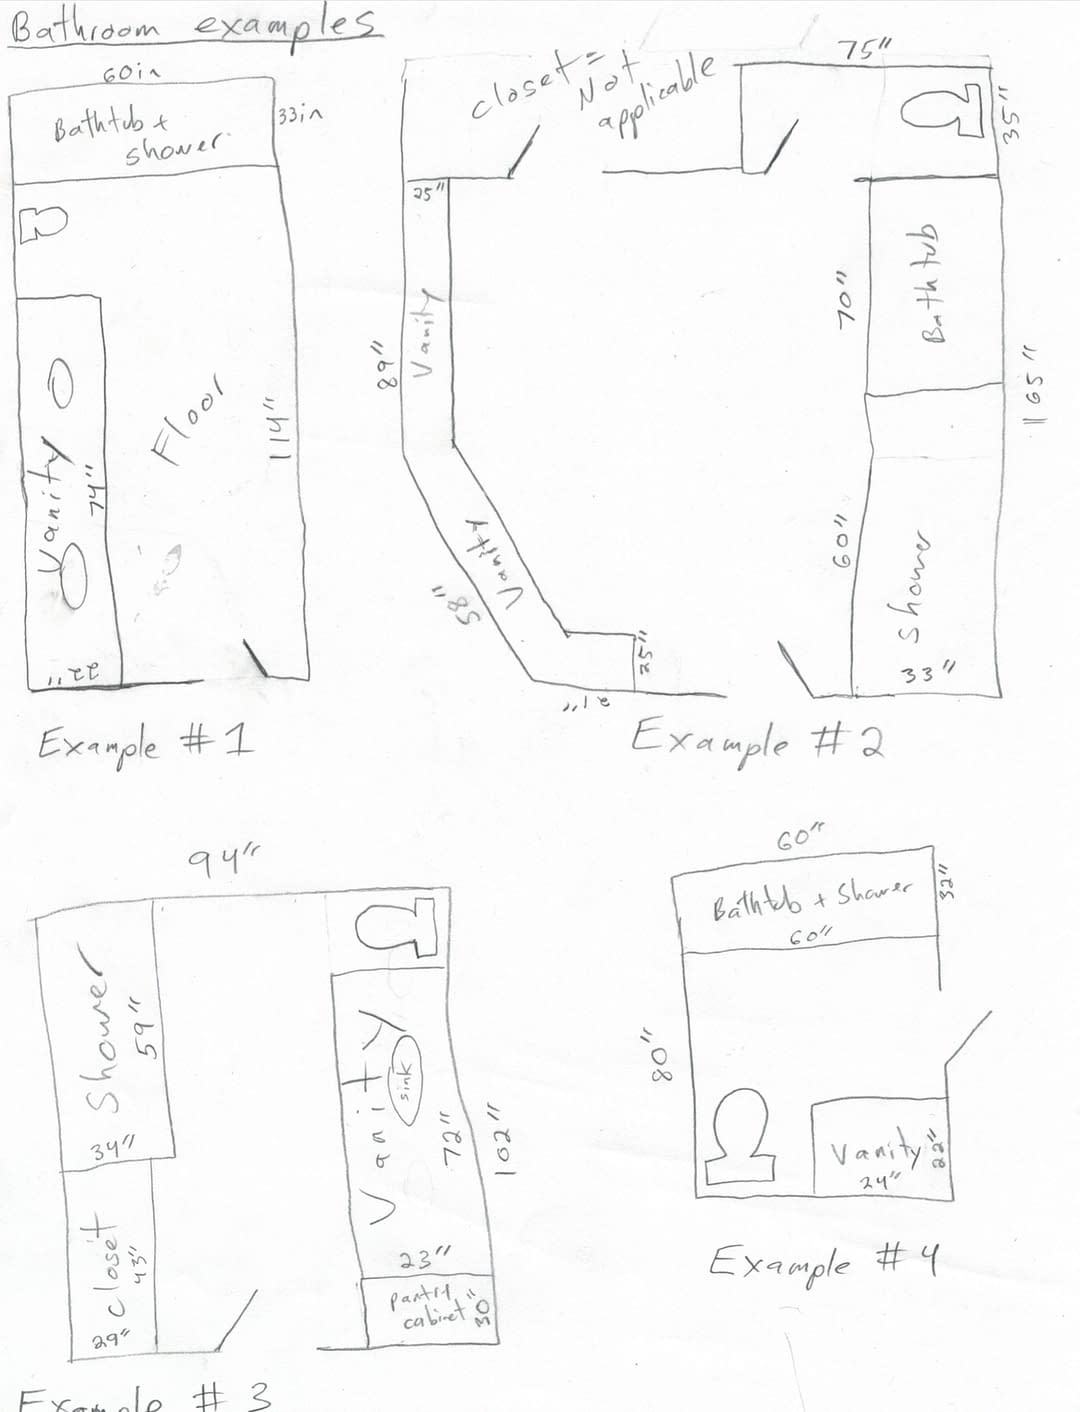 Bathroom remodel drawing examples